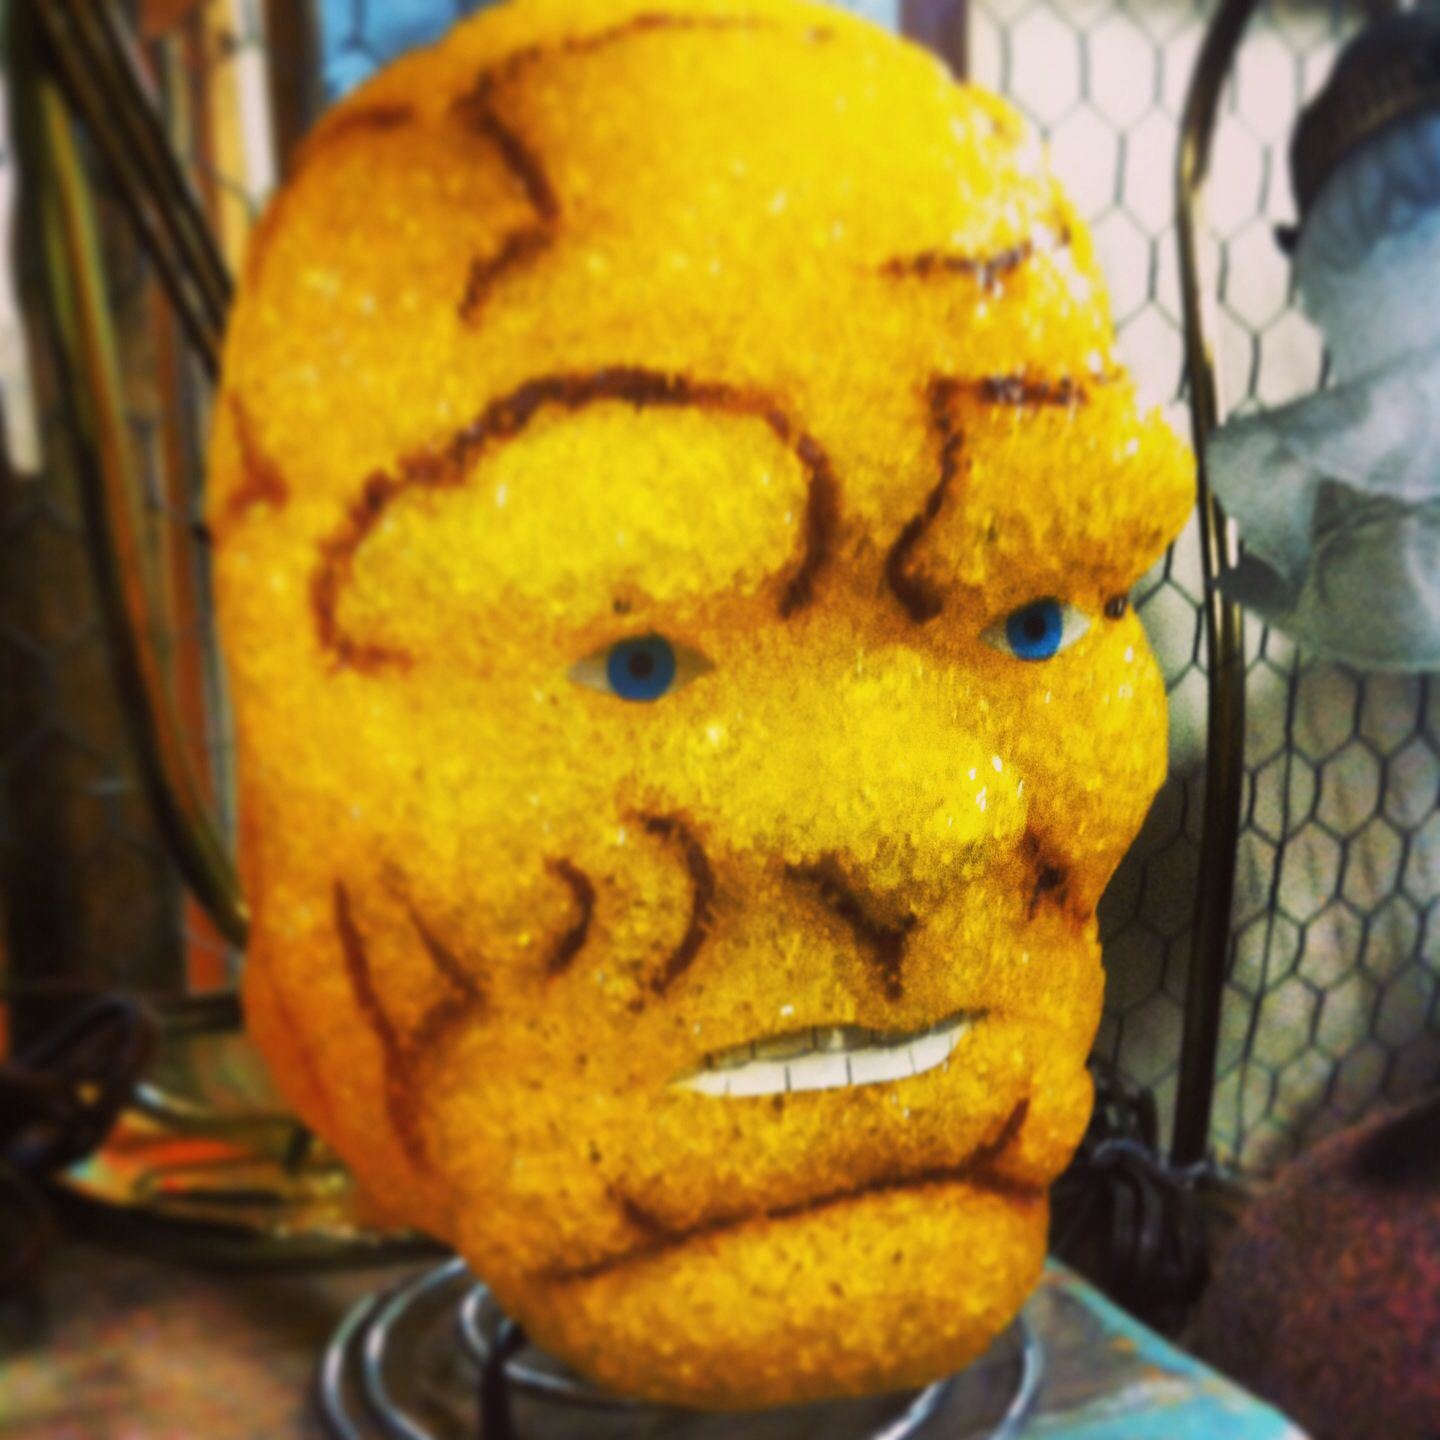 Ben Grimm (the Thing) glow lamp